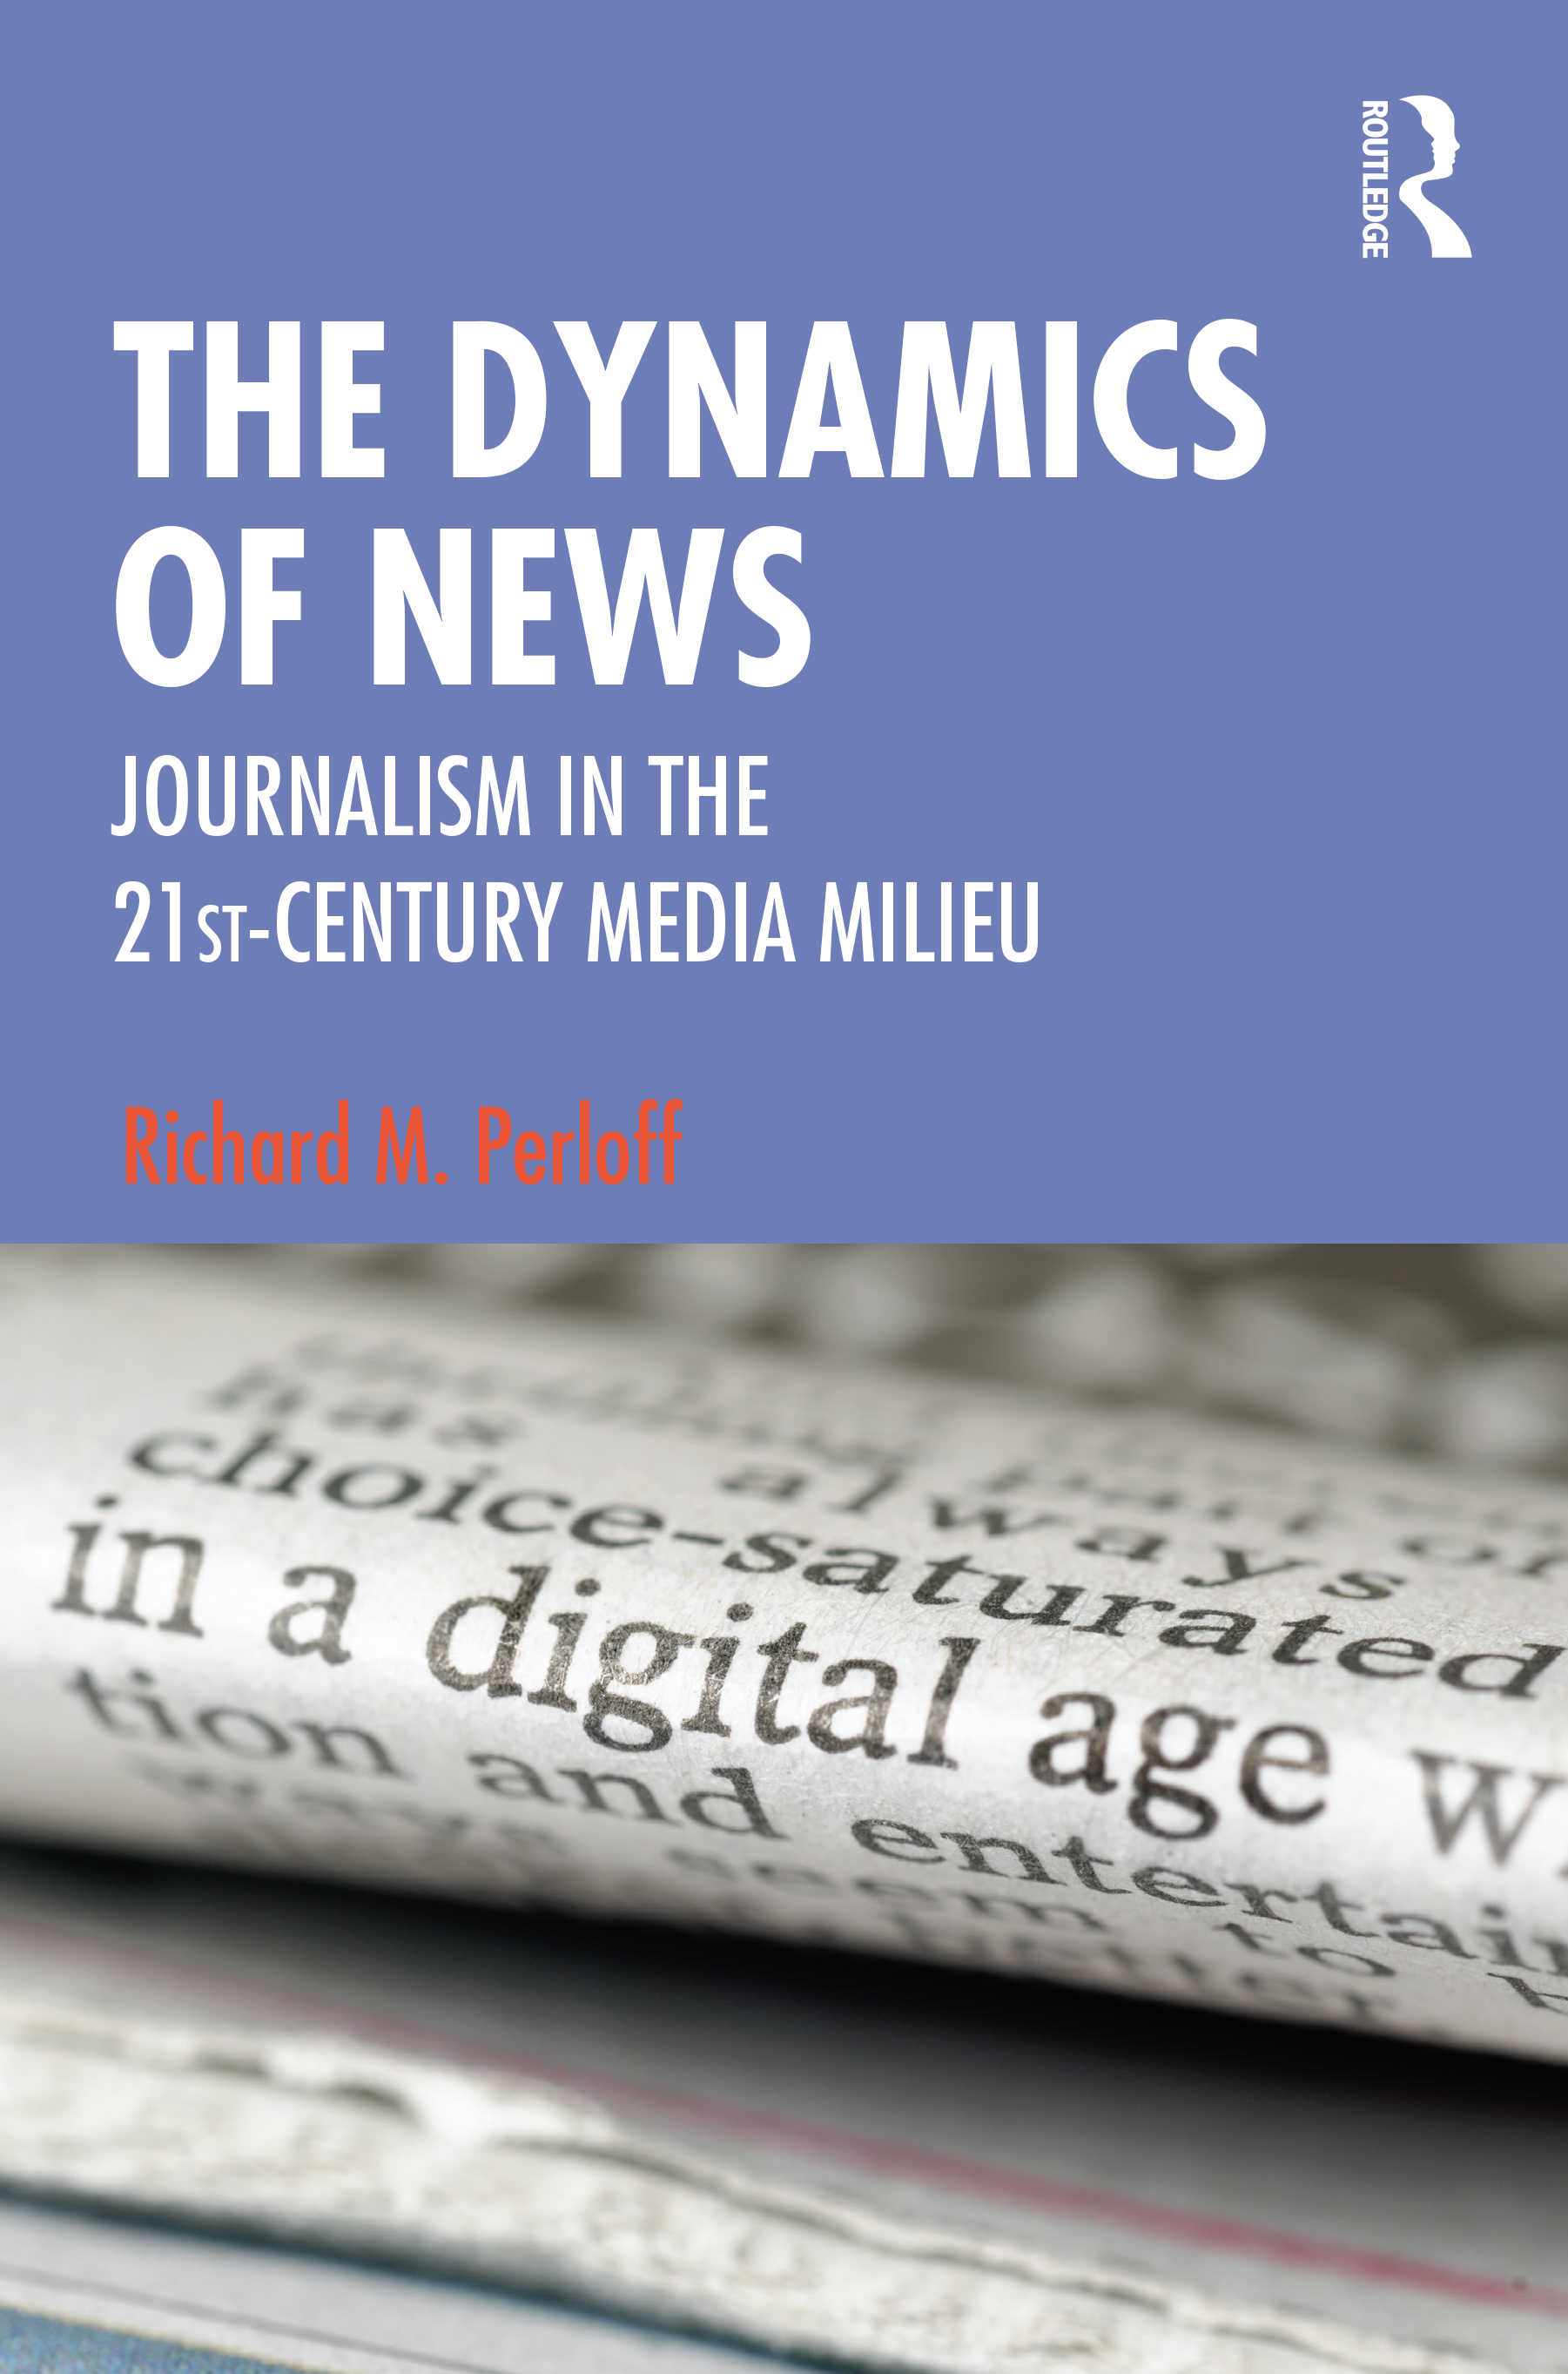 The Dynamics of News: Journalism in the 21st-Century Media Milieu book cover